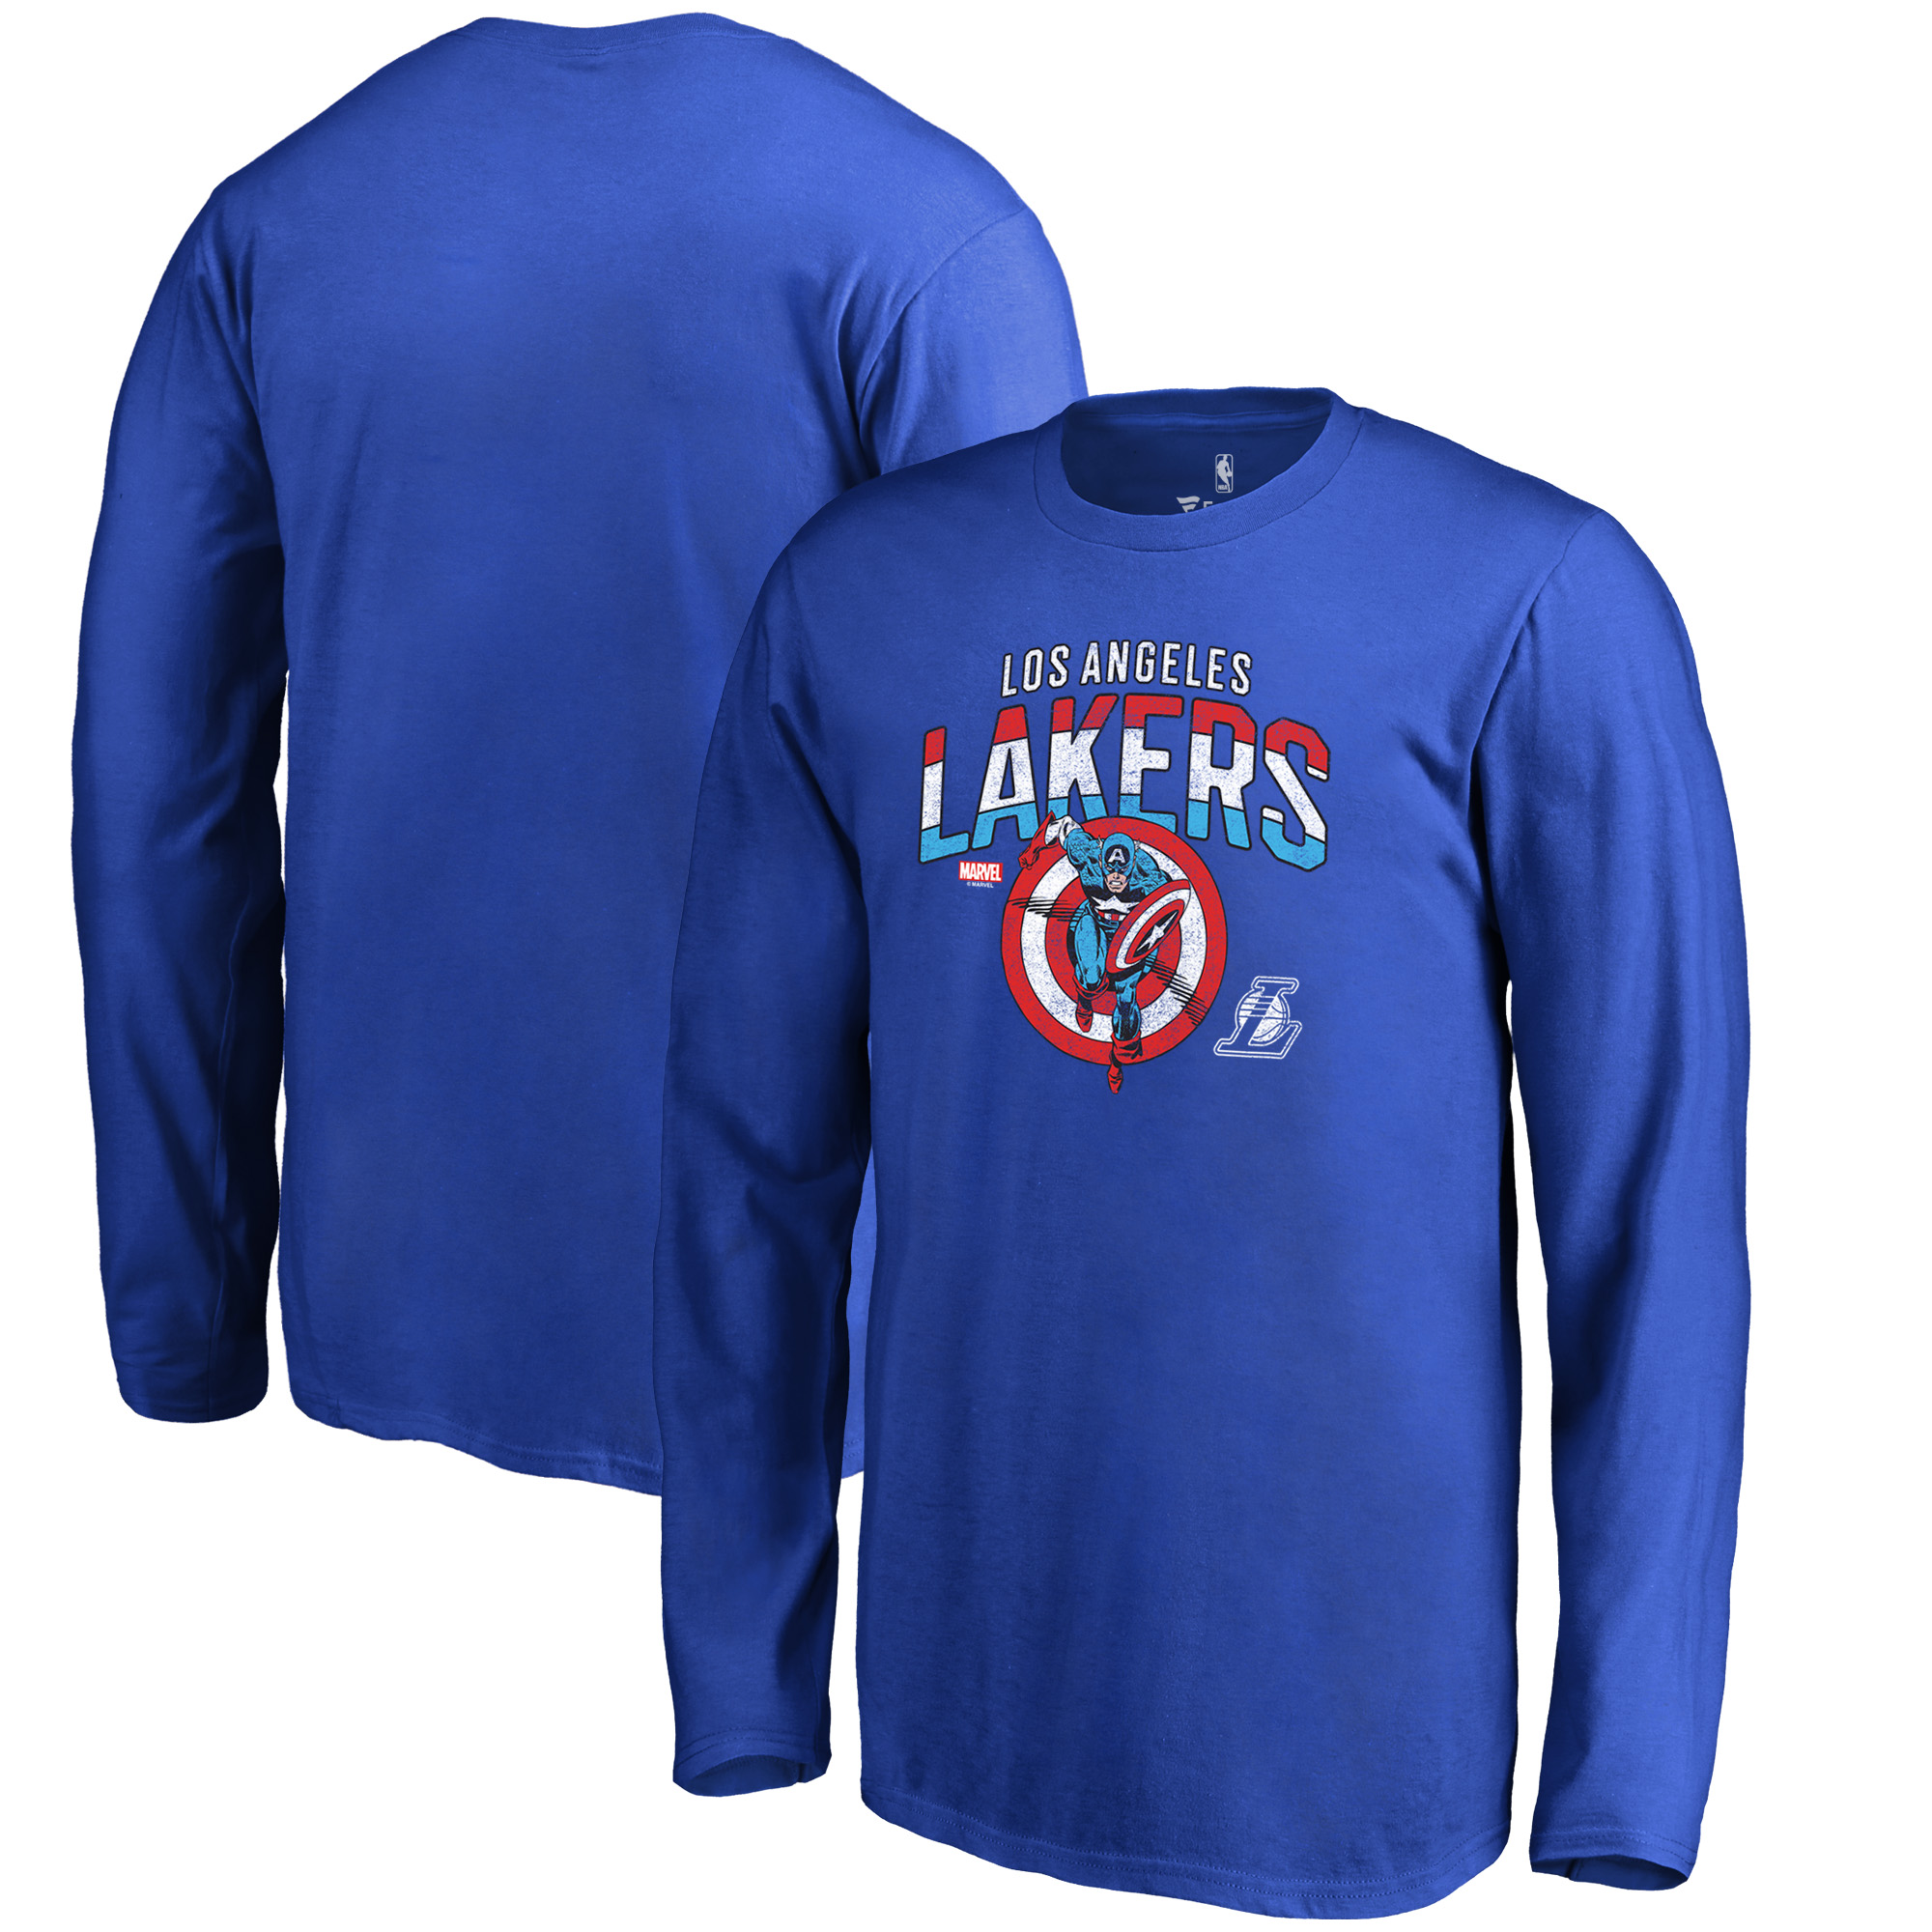 Los Angeles Lakers Fanatics Branded Youth Captain's Shield Long Sleeve T-Shirt - Royal